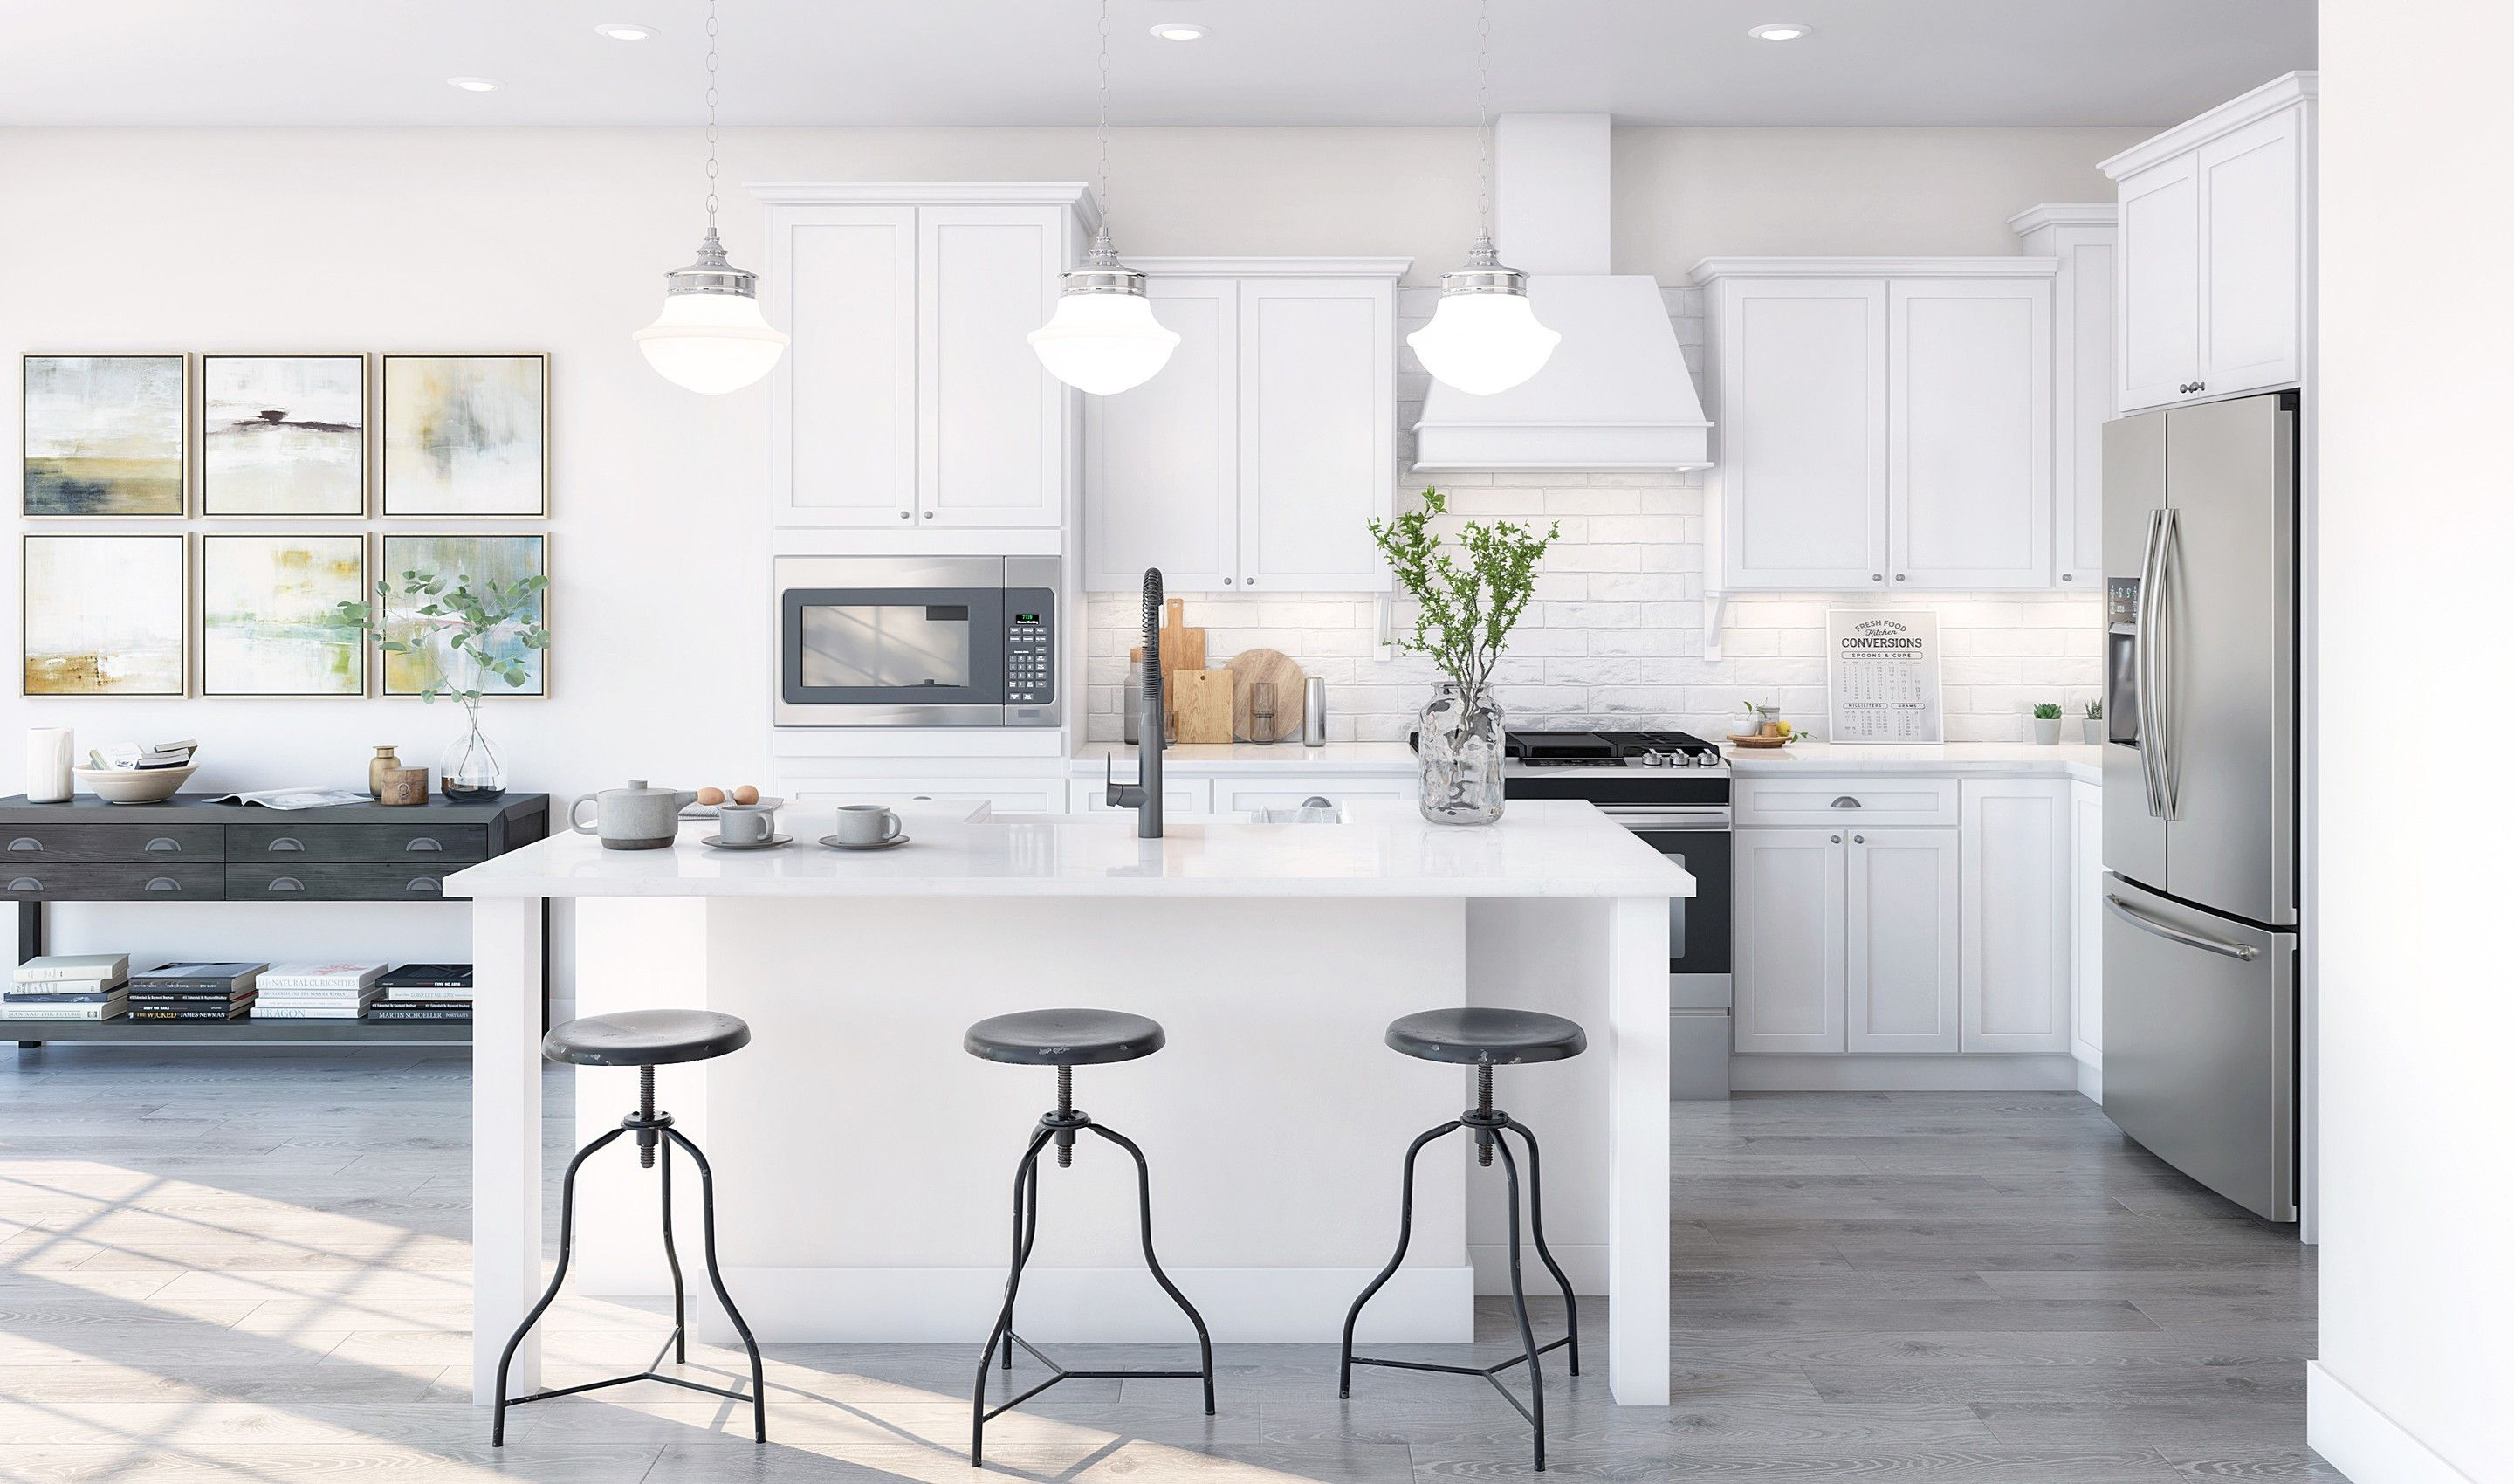 Kitchen featured in the Bryn Mawr By K. Hovnanian® Homes in Monmouth County, NJ